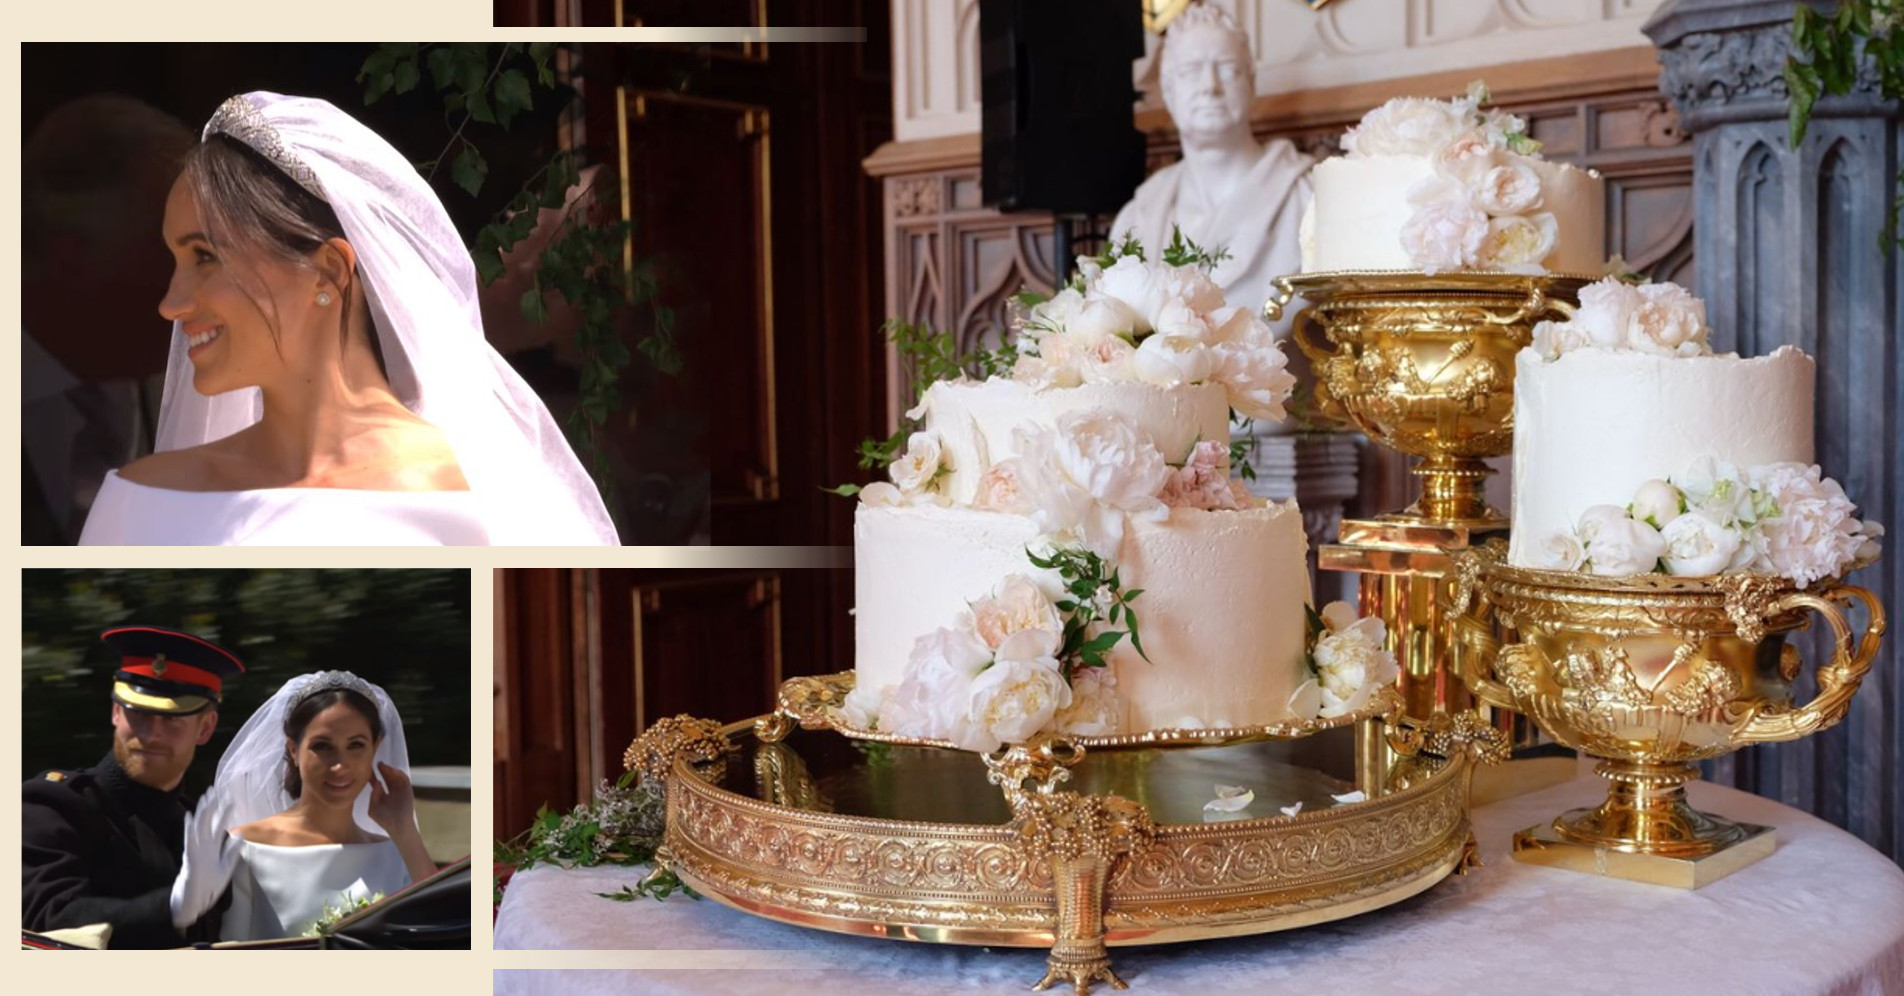 The Royal Wedding Cake Is So Much More Than Meets The Eye